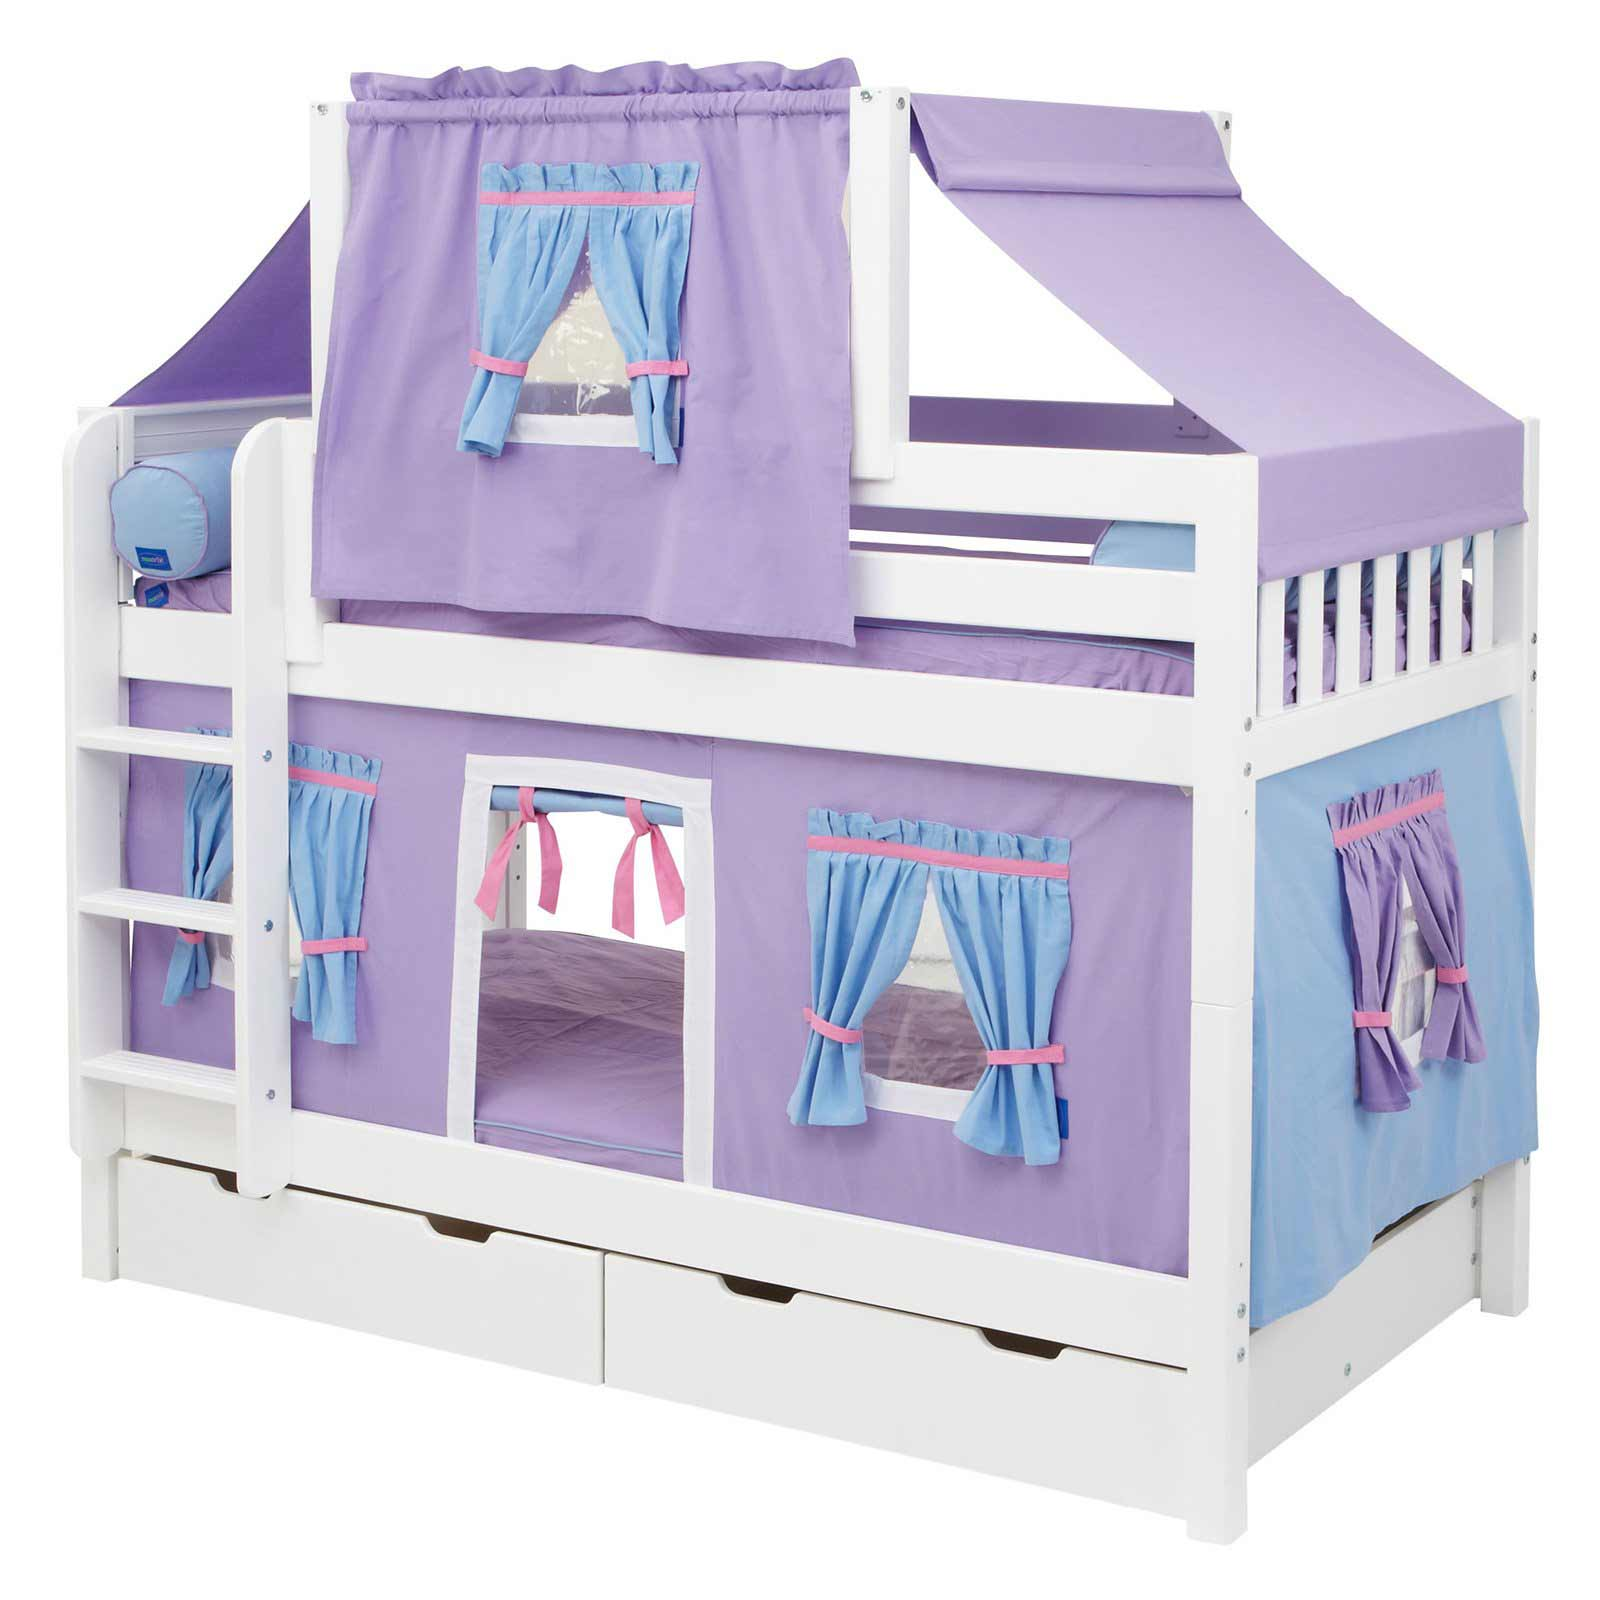 purple Girl Bunk Bed with Twin Deluxe Tent  sc 1 st  Decoholic & 10 Awesome Girlsu0027 Bunk Beds - Decoholic